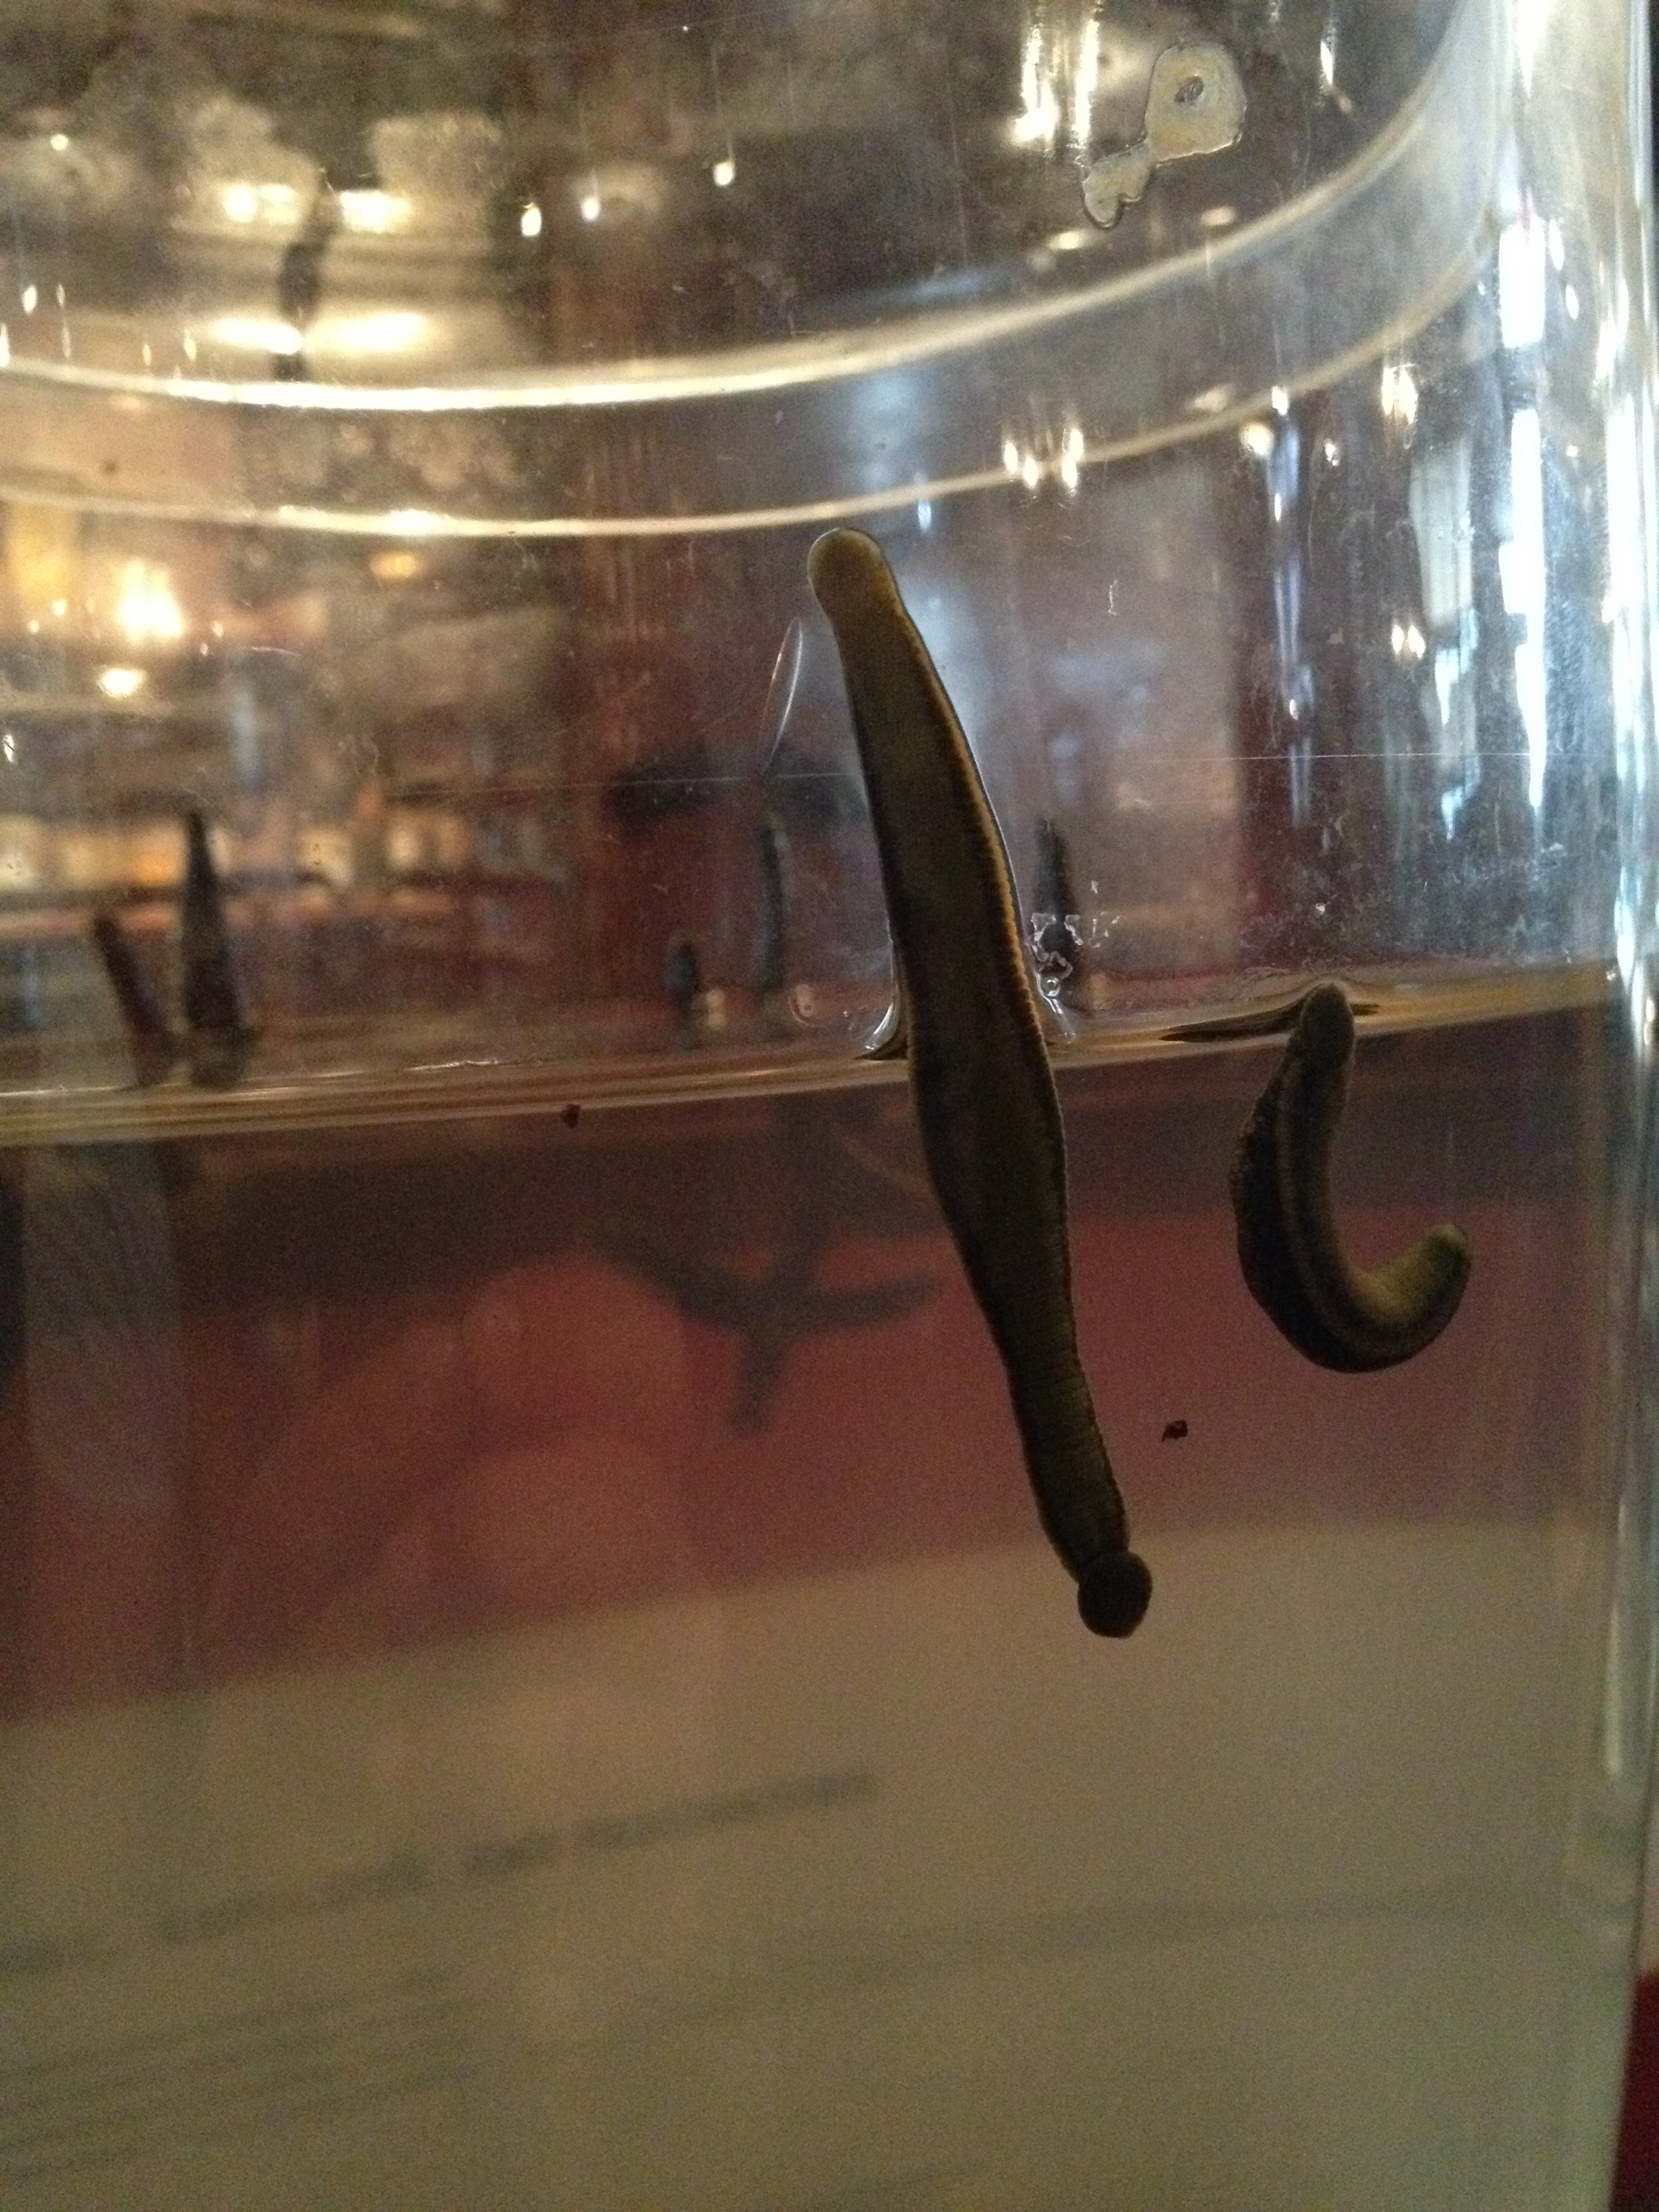 A glass jar of leeches